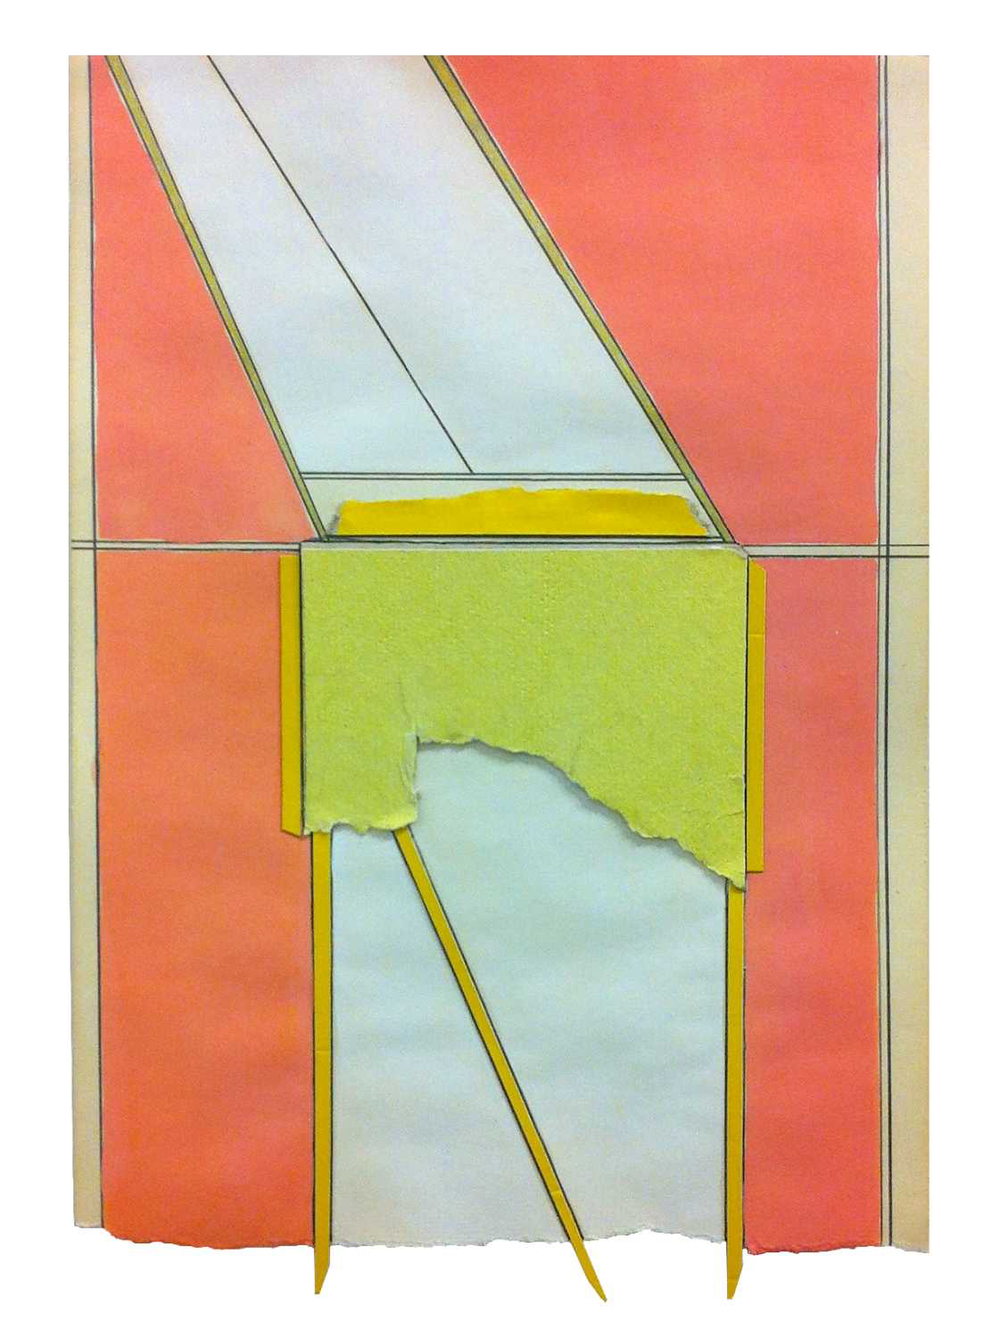 Ply  , 2015  pencil, gouache, collage on found paper  10.25 x 7 inches